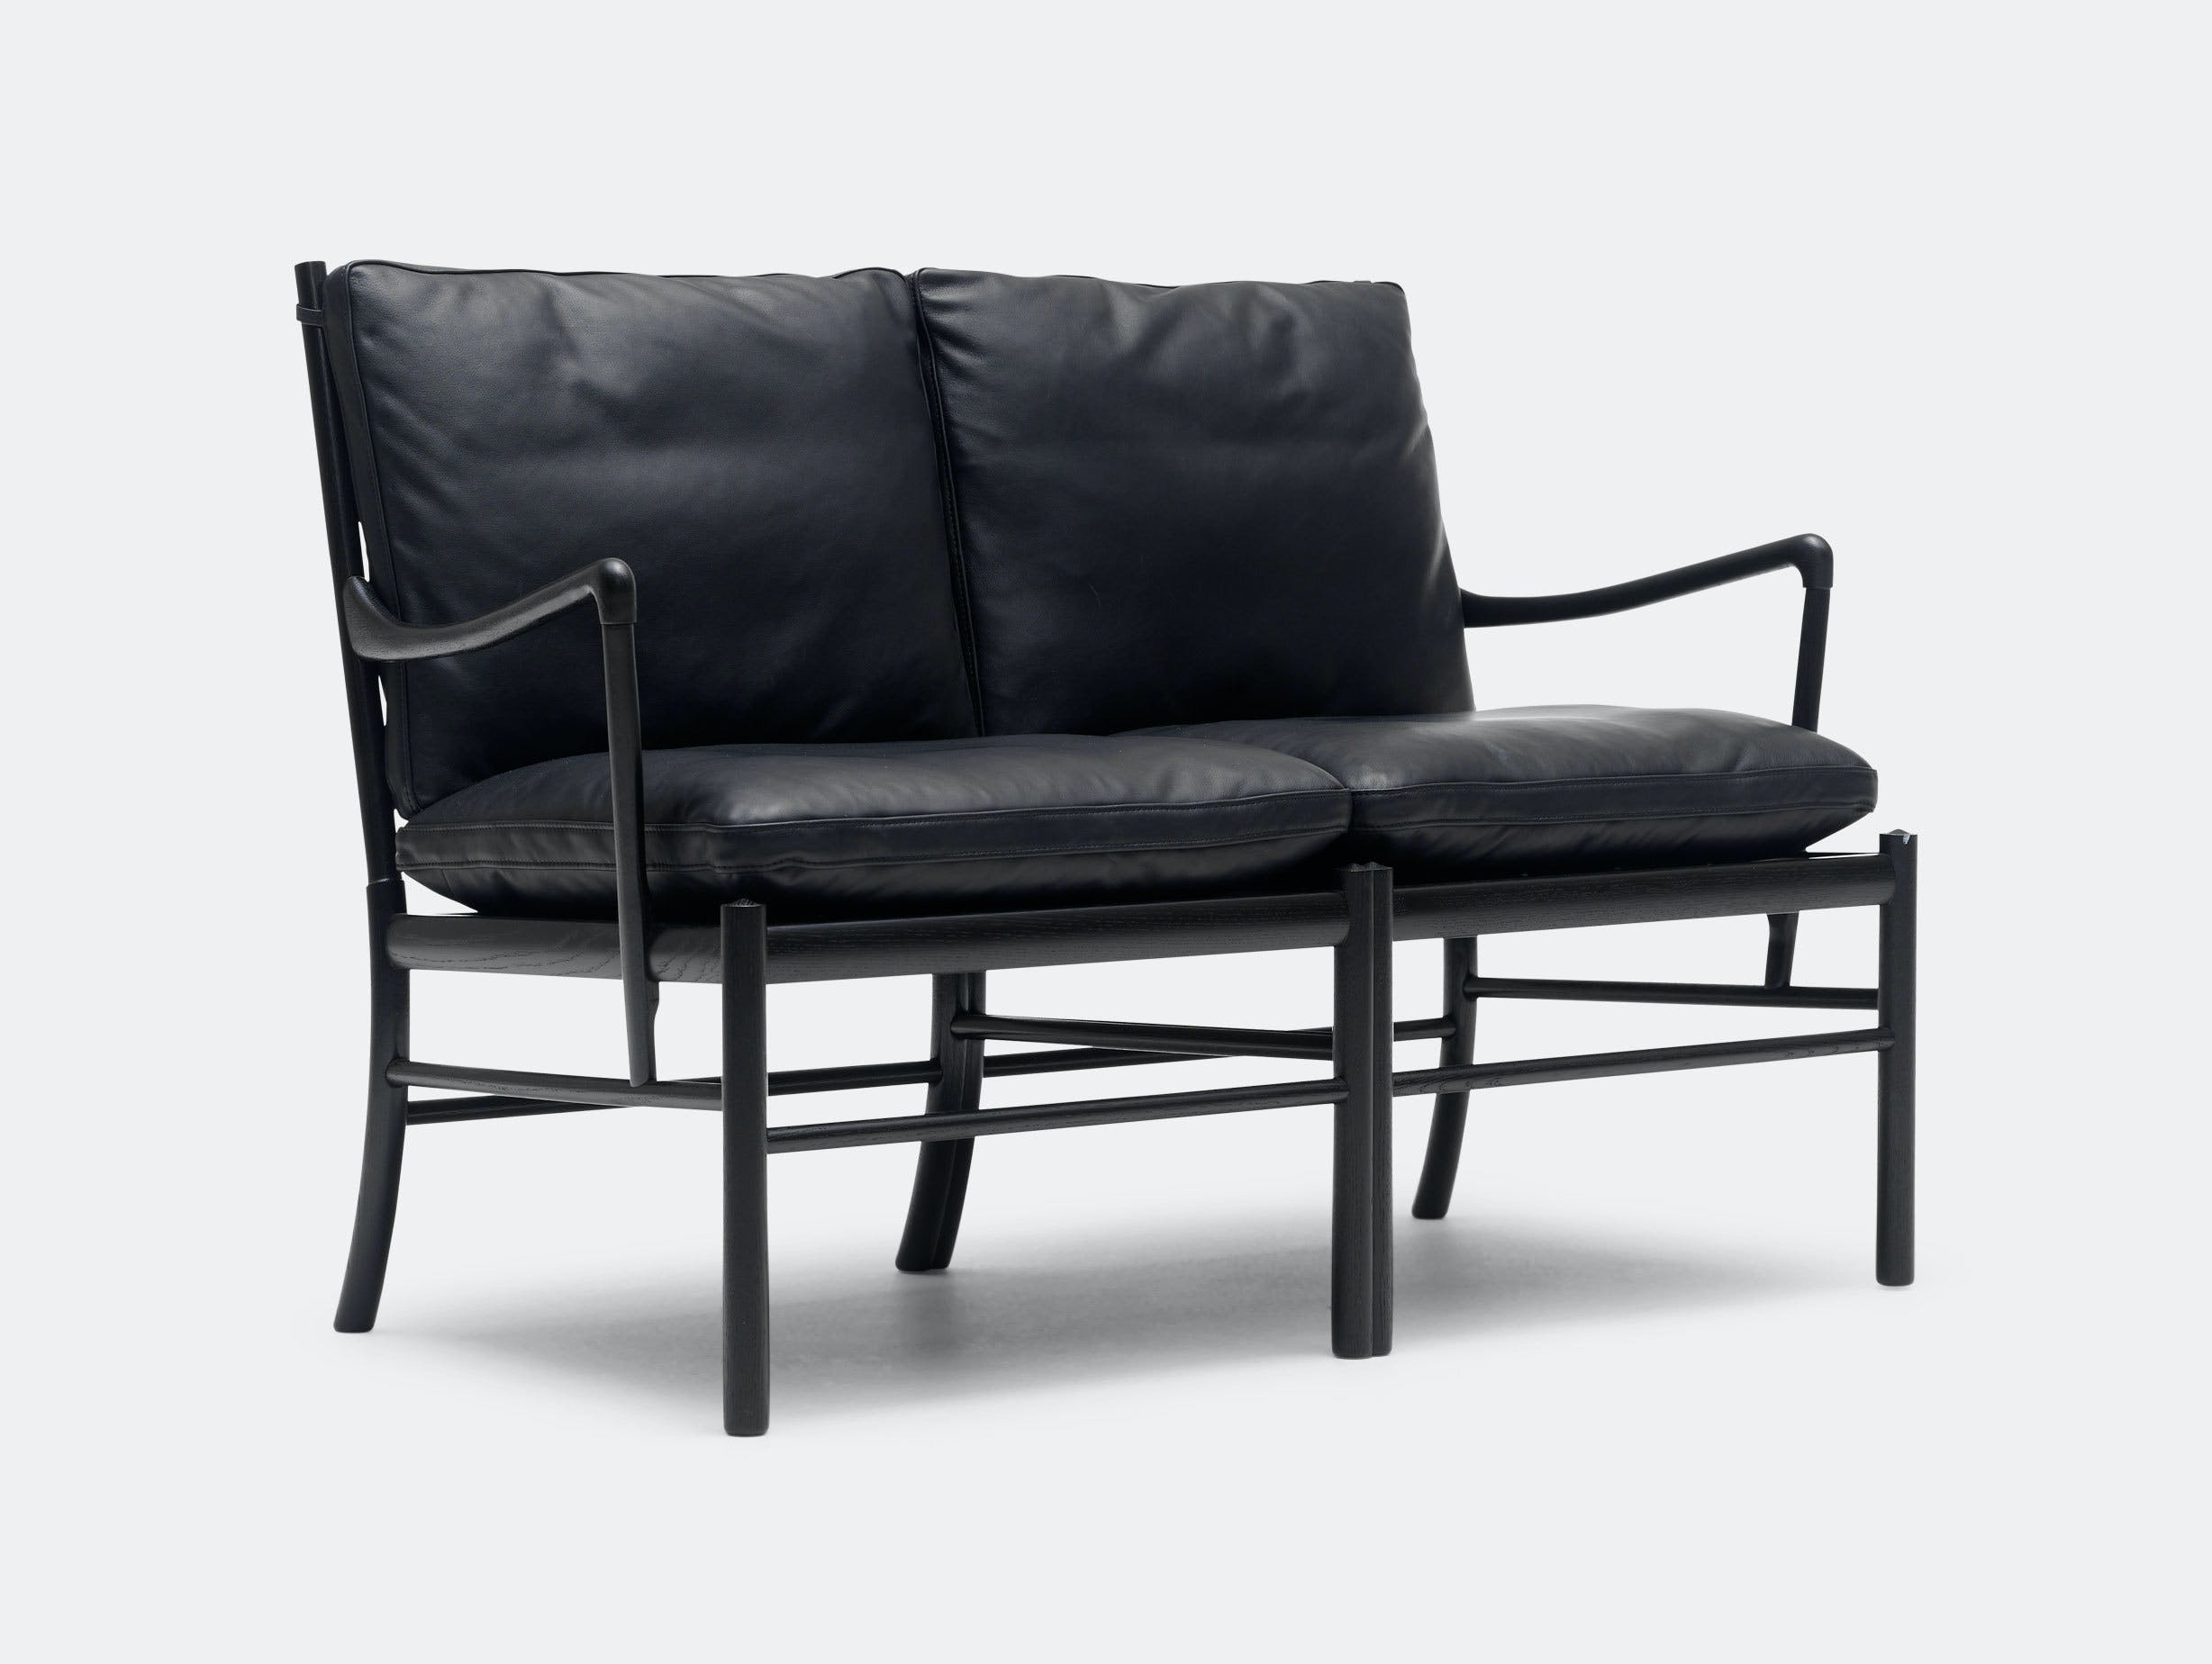 Carl Hansen Ow149 2 Colonial Sofa Black Leather Ole Wanscher